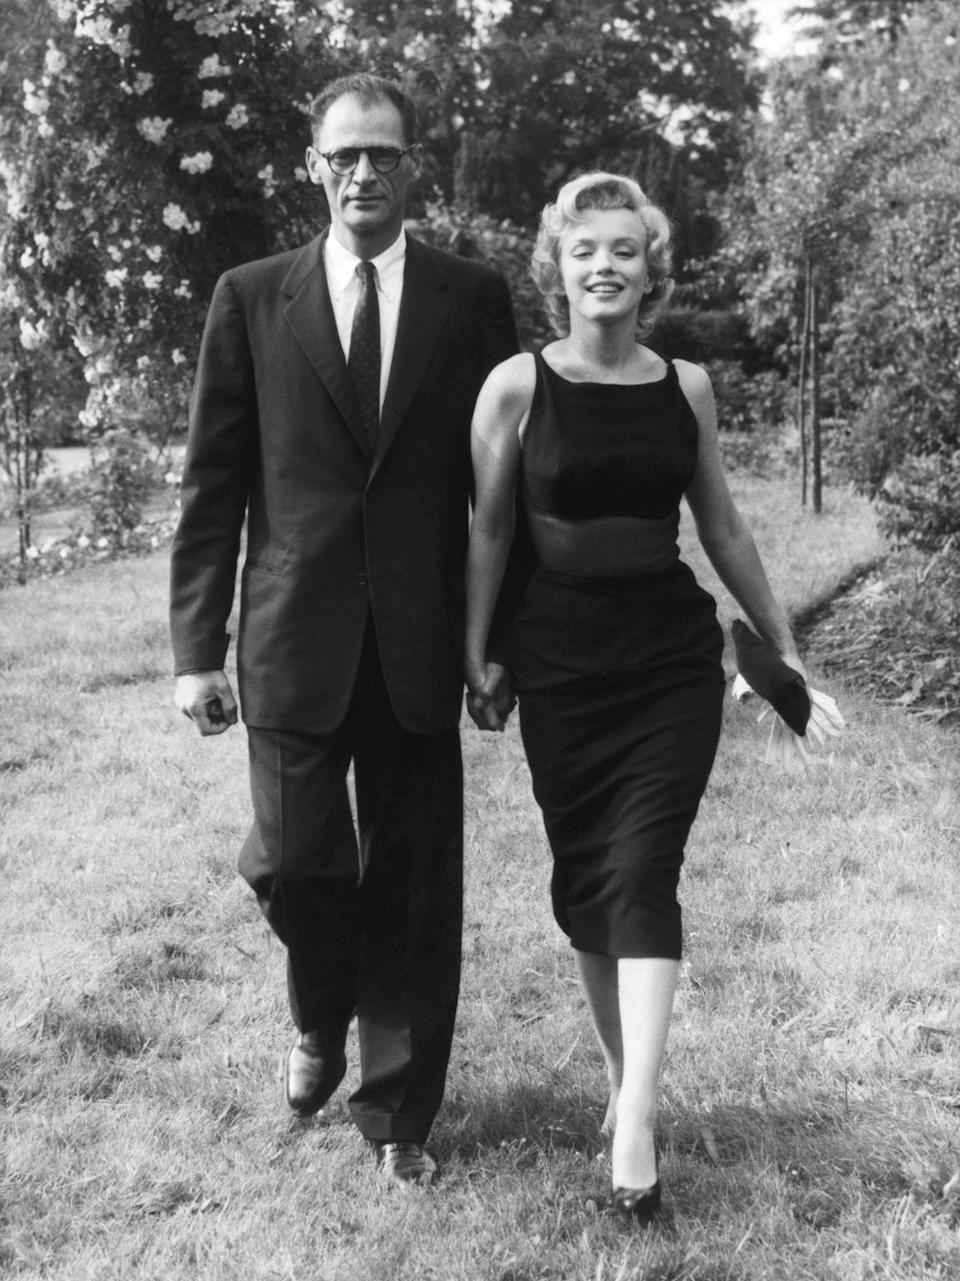 "<p>Monroe had an affair with playwright Arthur Miller, who <a href=""http://people.com/celebrity/read-marilyn-monroes-very-racy-love-letter-from-arthur-miller/"" rel=""nofollow noopener"" target=""_blank"" data-ylk=""slk:wrote her lustful letters"" class=""link rapid-noclick-resp"">wrote her lustful letters</a> during her marriage to Joe DiMaggio. She filed for divorce from DiMaggio in 1954 and he wrote her his own letter, begging her to come back. Monroe eventually married Miller. </p>"